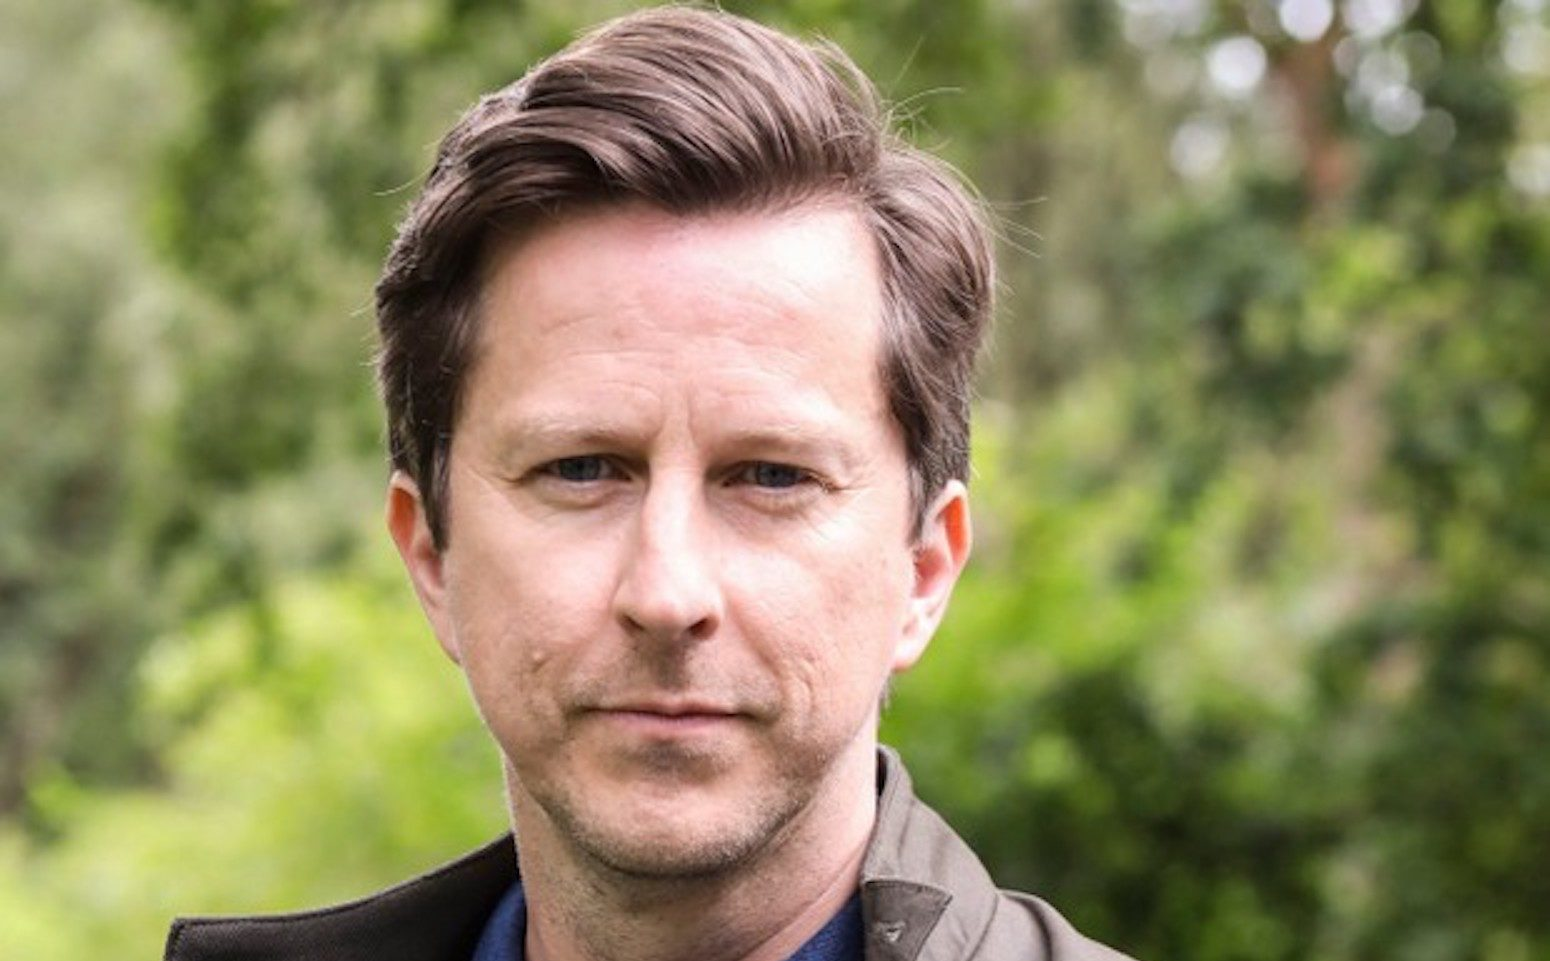 Does Lee Ingleby have a wife? Star of The A Word and ITV's Innocent